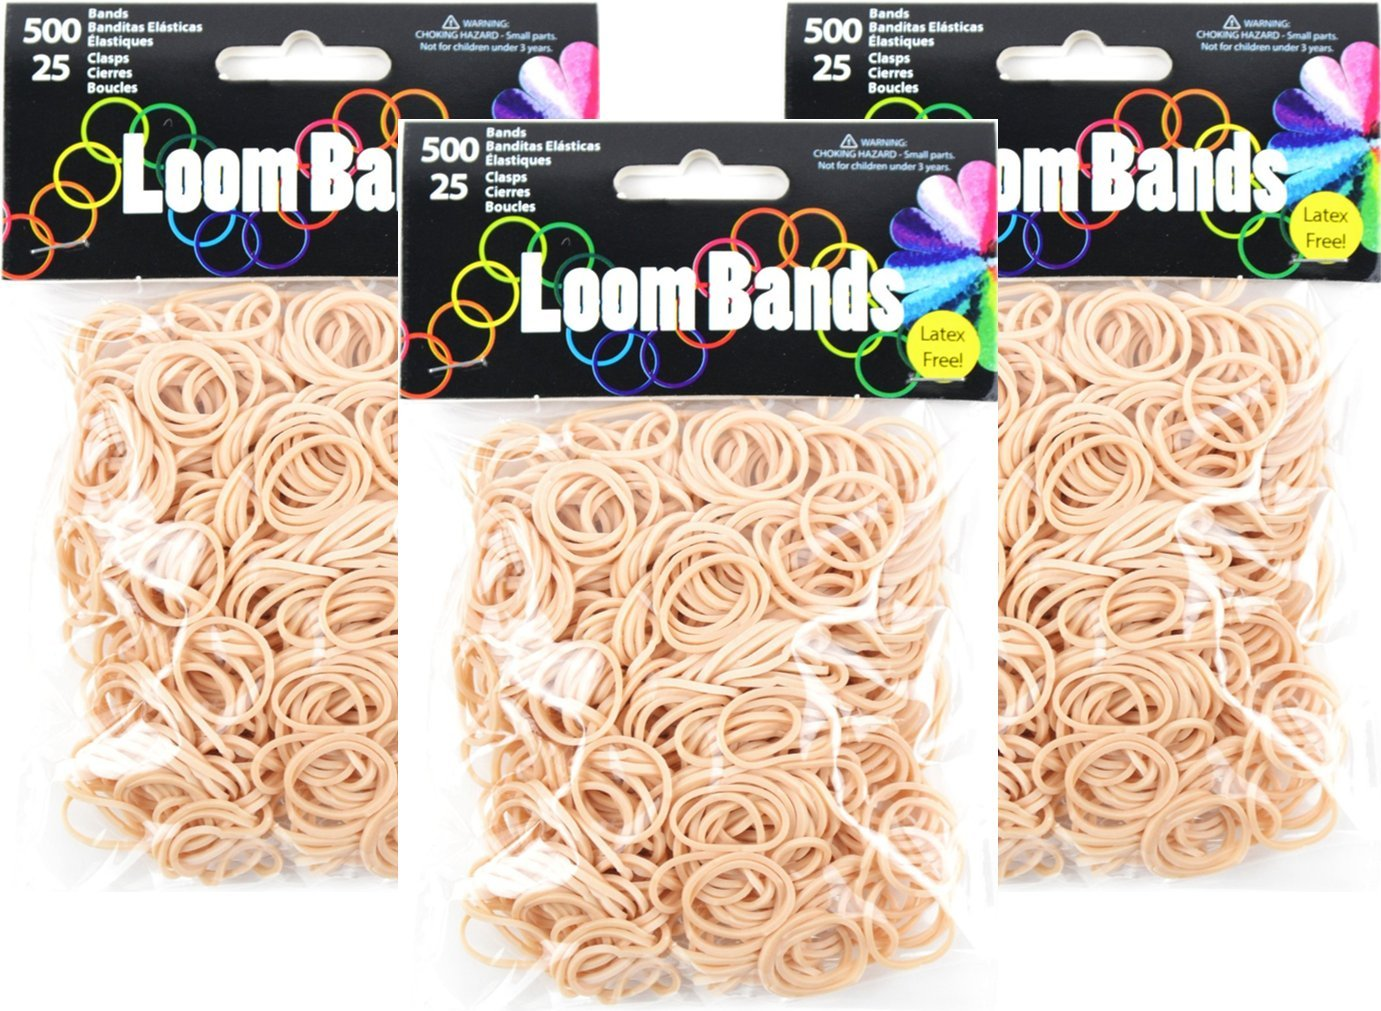 500 Bands Tan 3 50677 Midwest Design Imports Inc Loom Bands Value Pack 25 Plastic Clasps